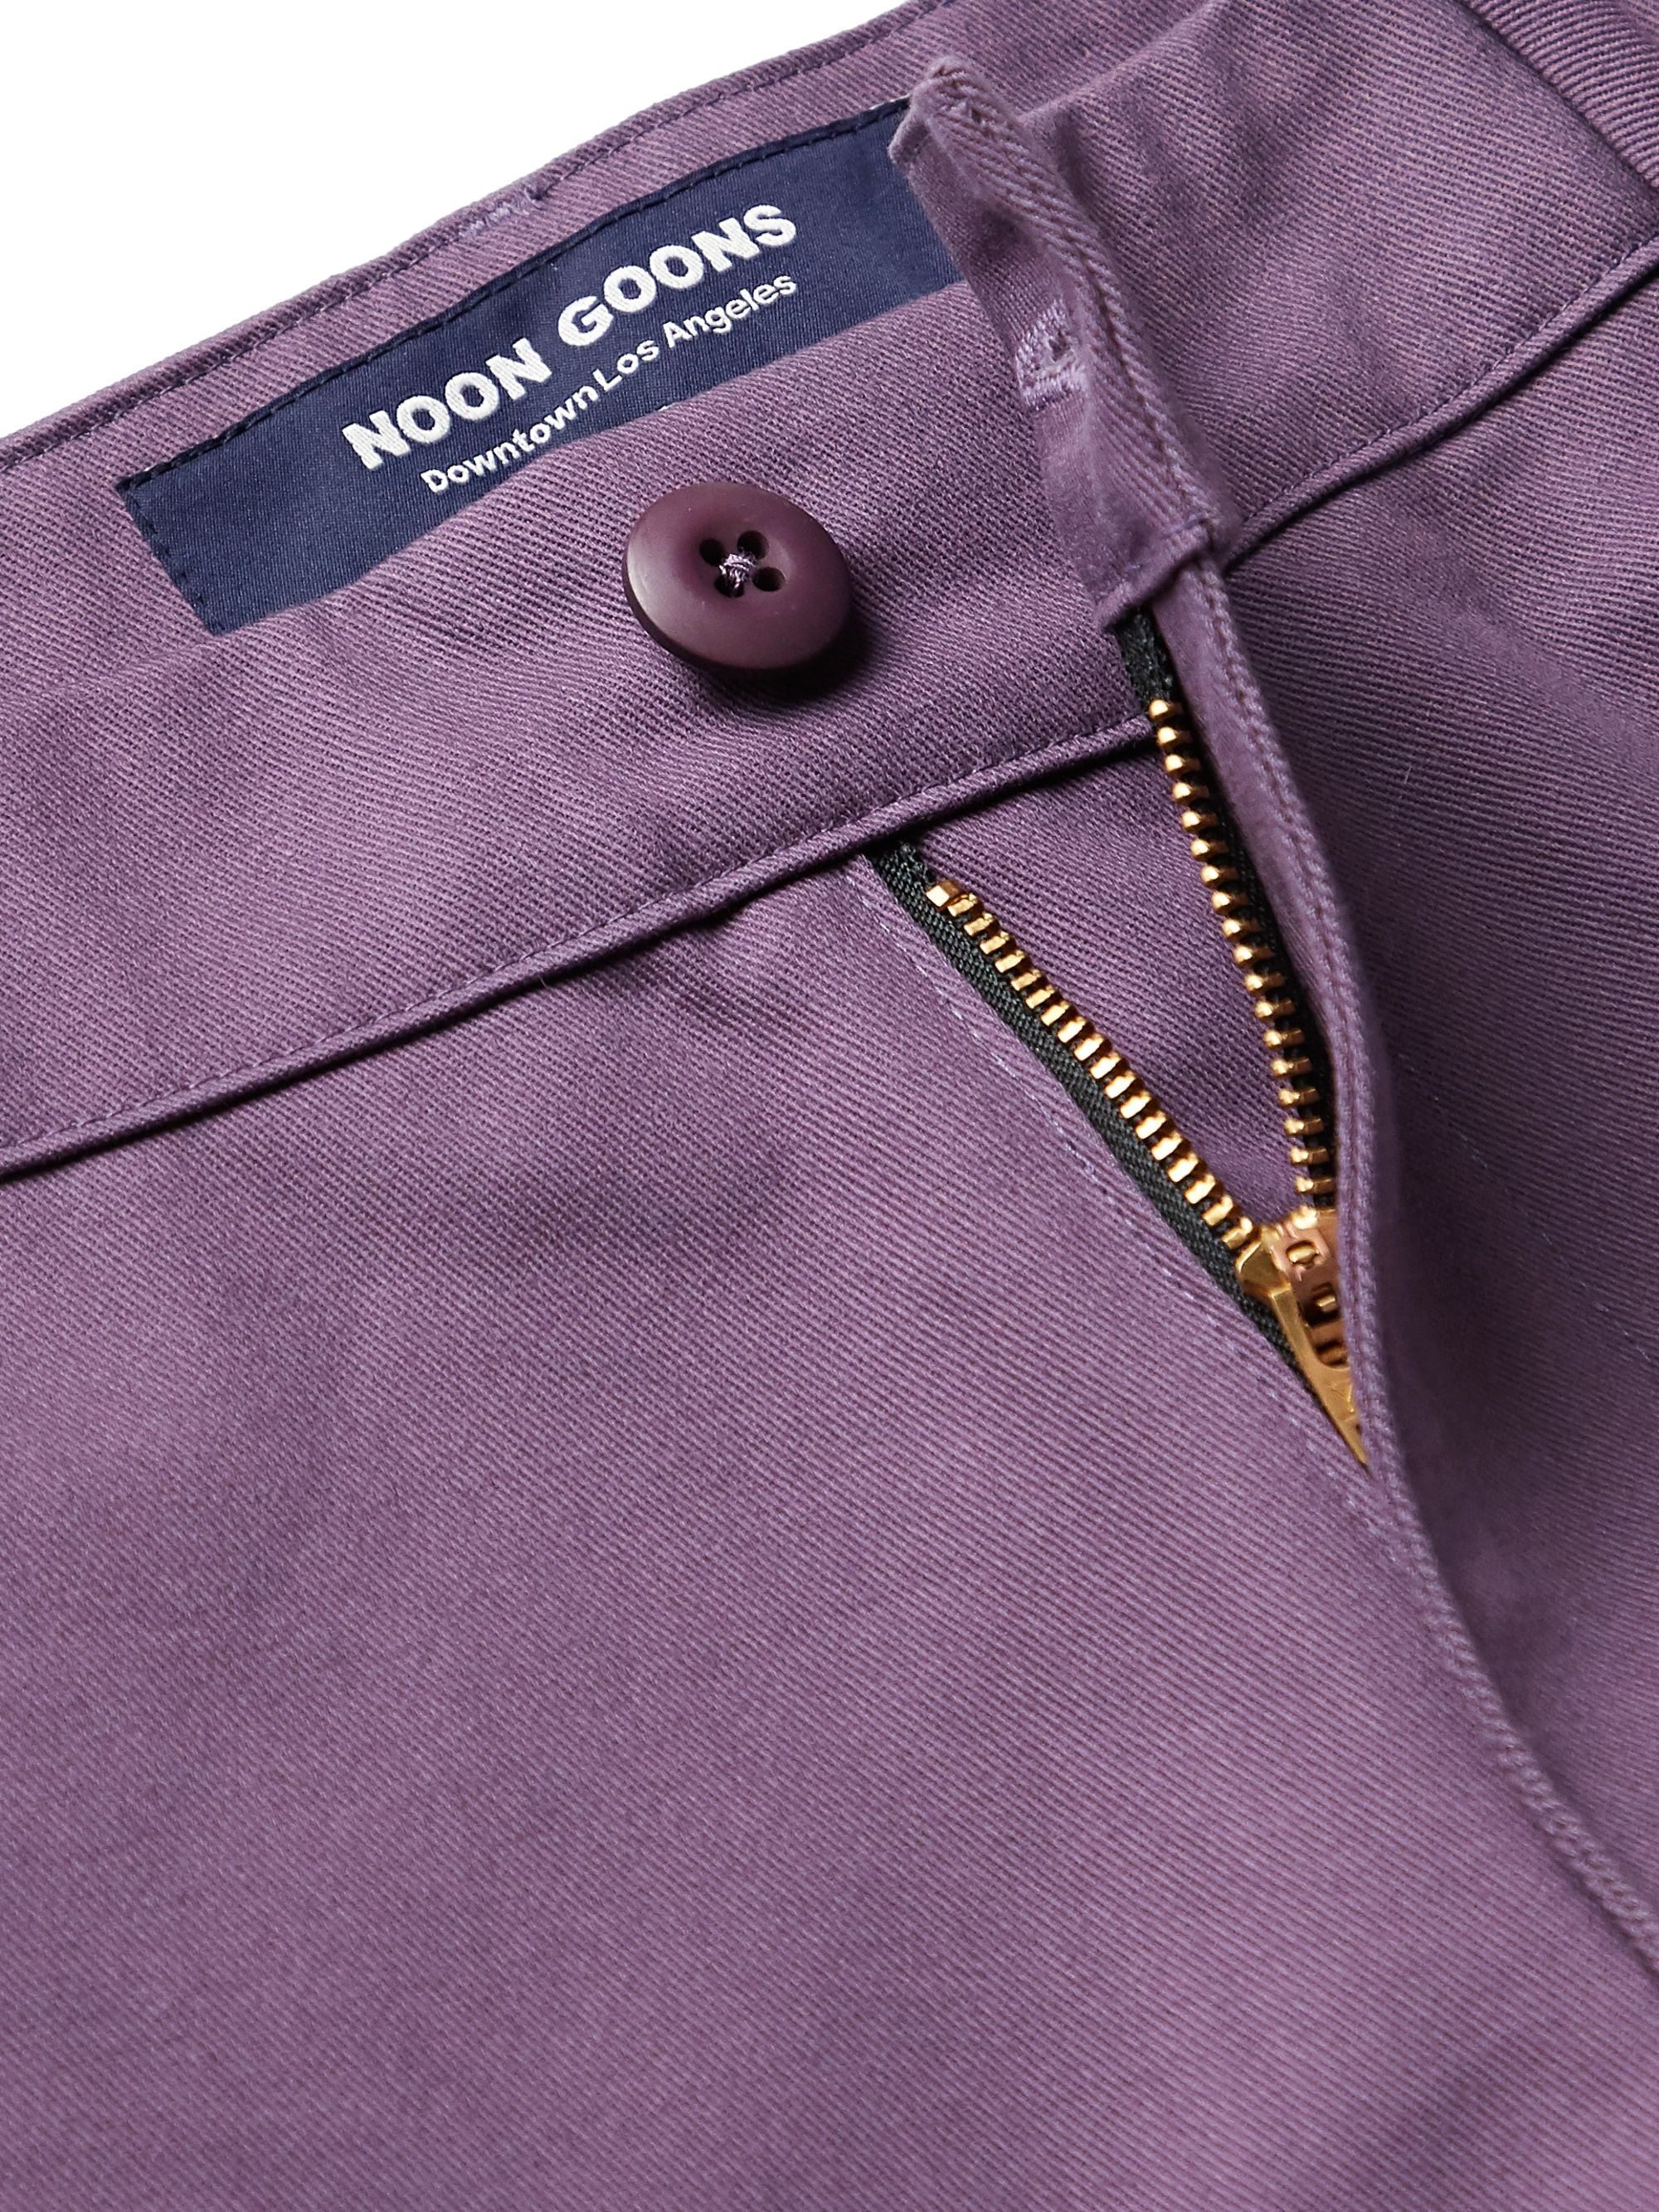 Noon Goons Slim-Fit Cotton-Twill Trousers